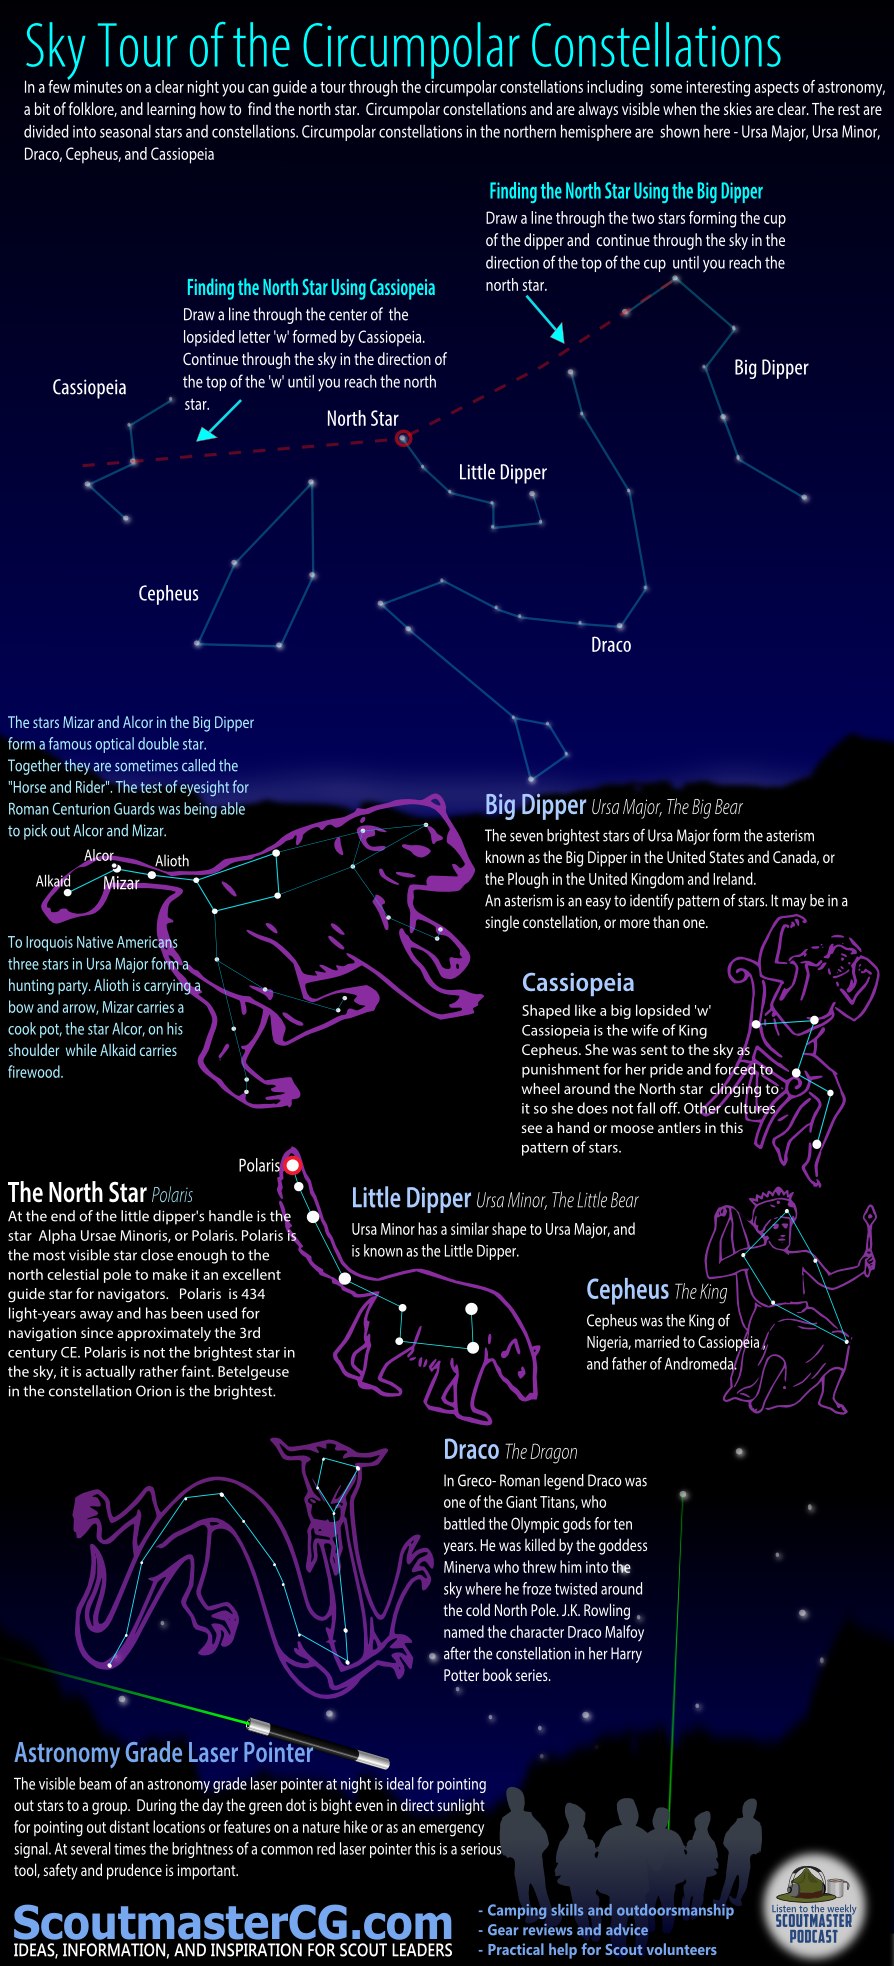 Sky Tour of Circumpolar Constellations